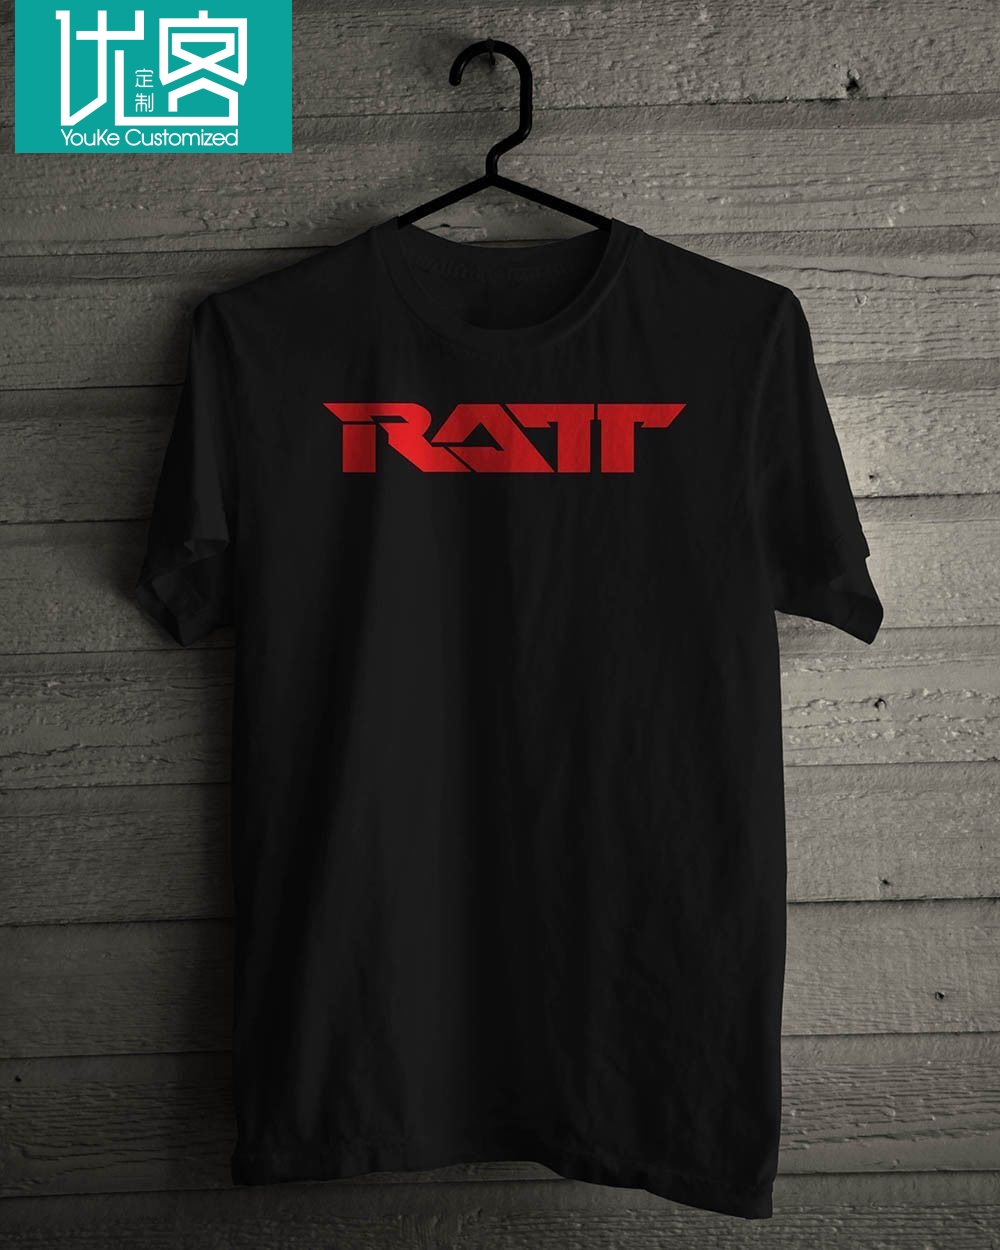 <font><b>Ratt</b></font> Heavy Metal Music Legend Black <font><b>T</b></font>-<font><b>Shirt</b></font> Short Sleeve Discount 100 % Cotton <font><b>T</b></font> <font><b>Shirt</b></font> Free Shipping Summer Fashion image